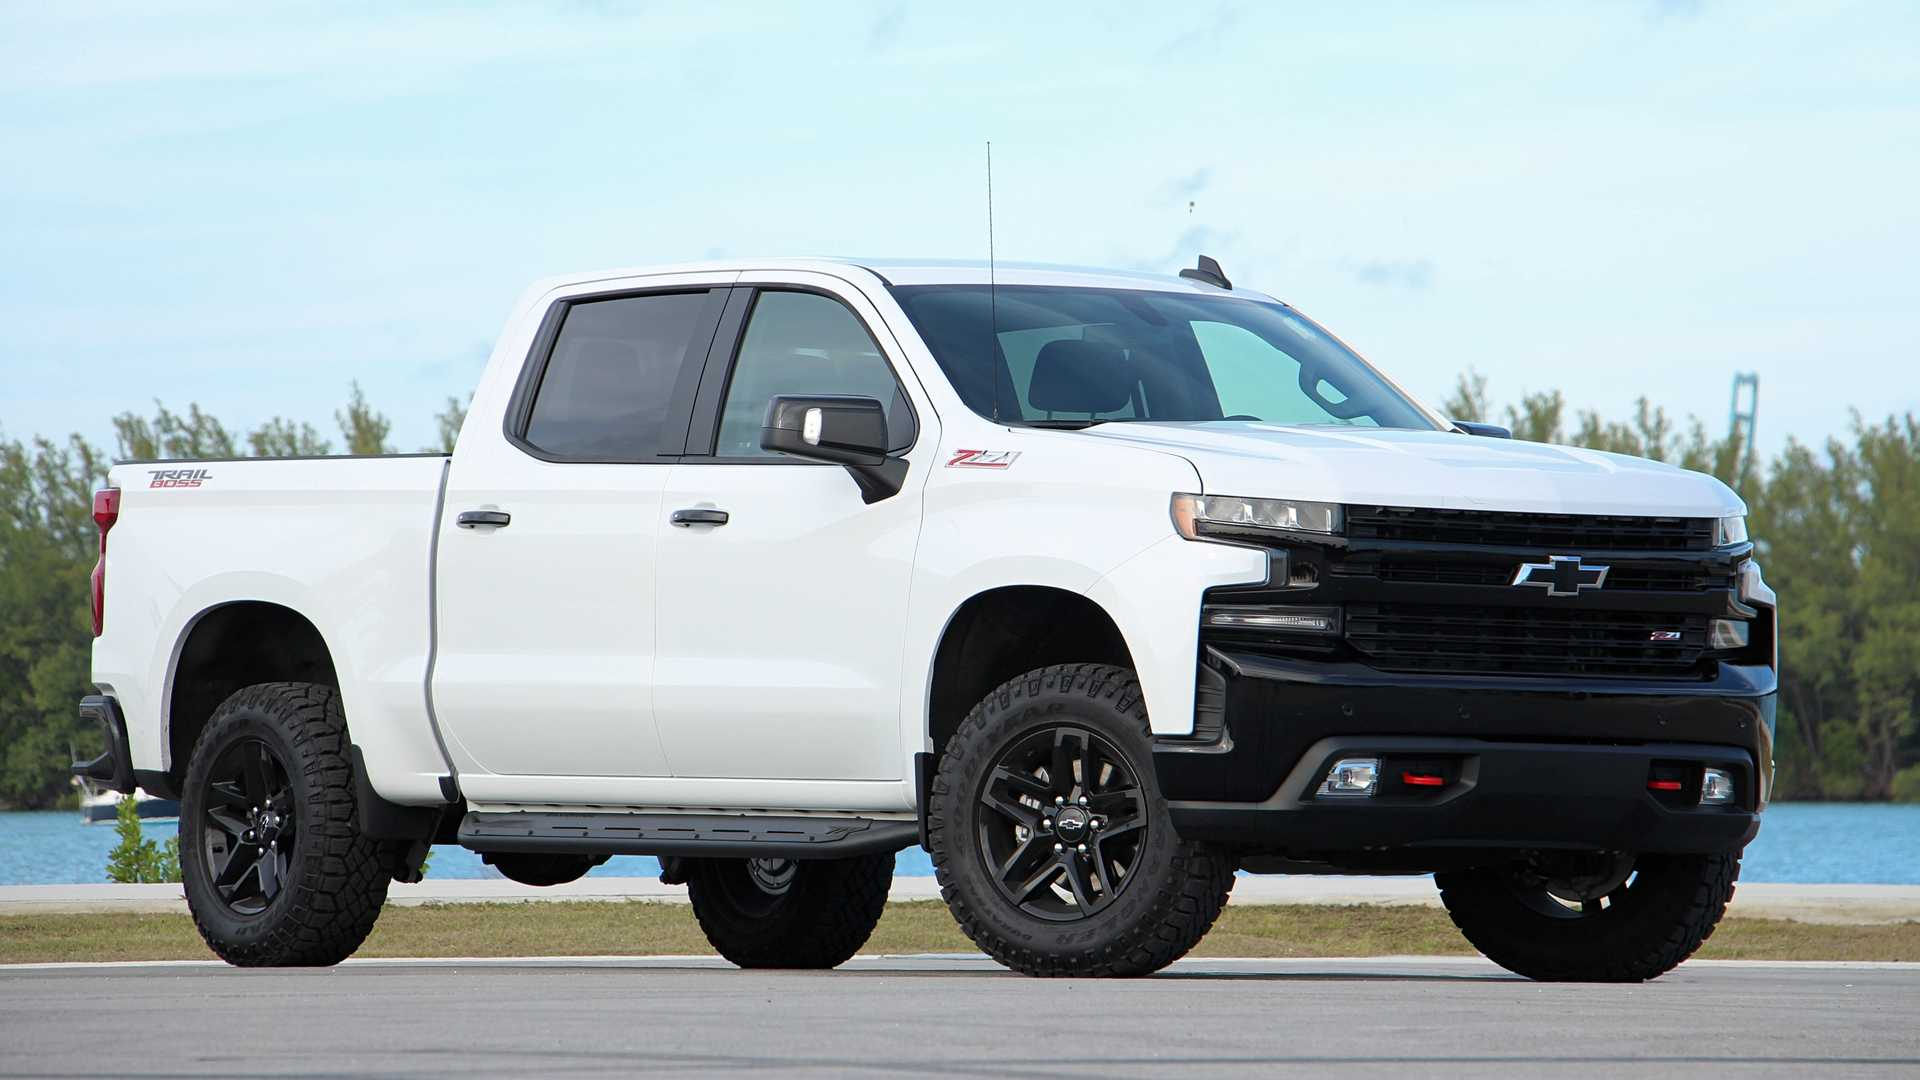 2019 Chevy Silverado Trail Boss Review Dumb Fun 1920x1080